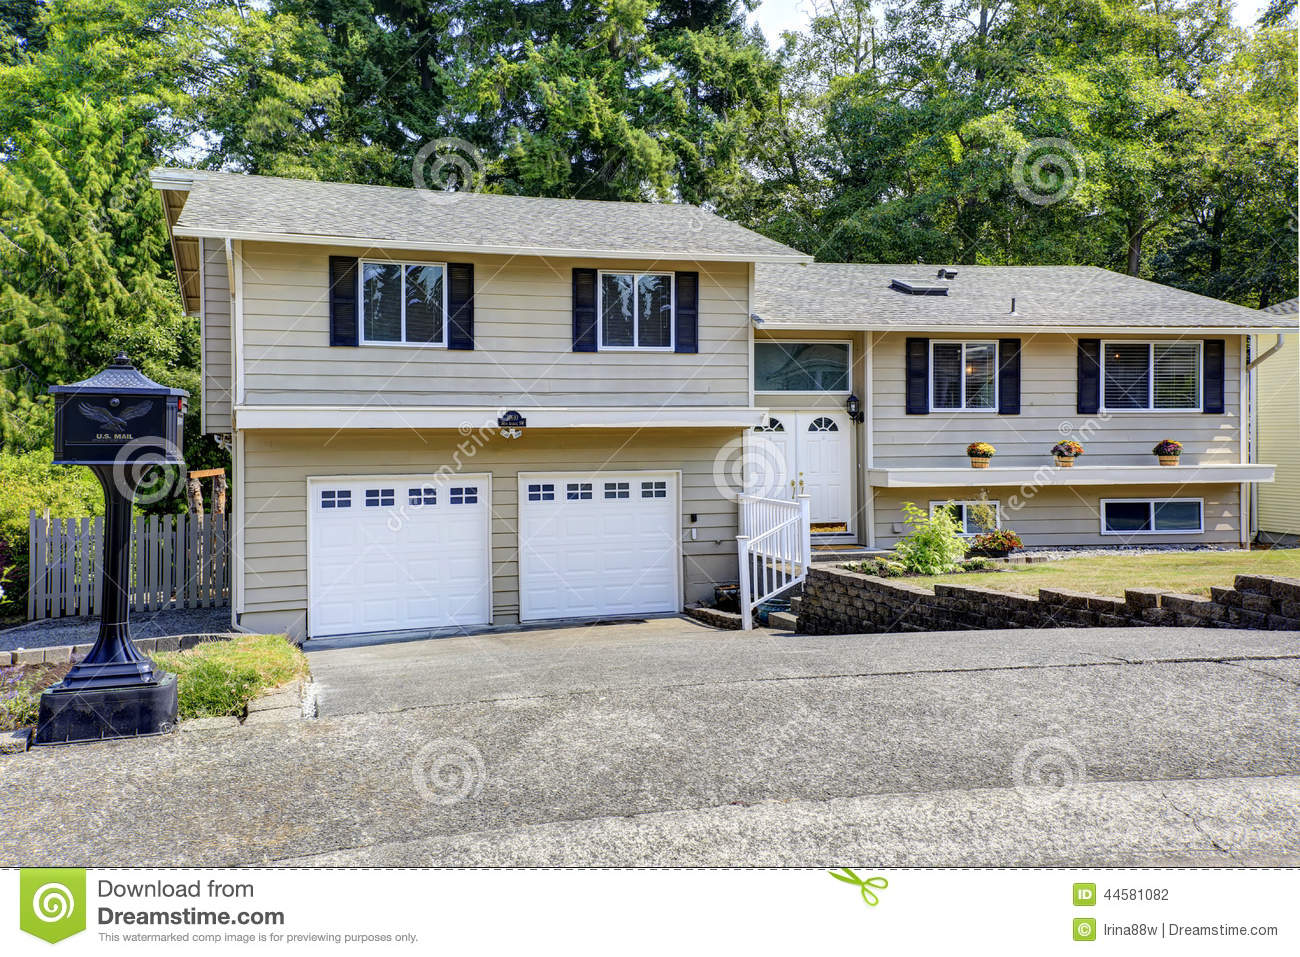 House exterior in federal way wa stock photo image for How large is a 2 car garage